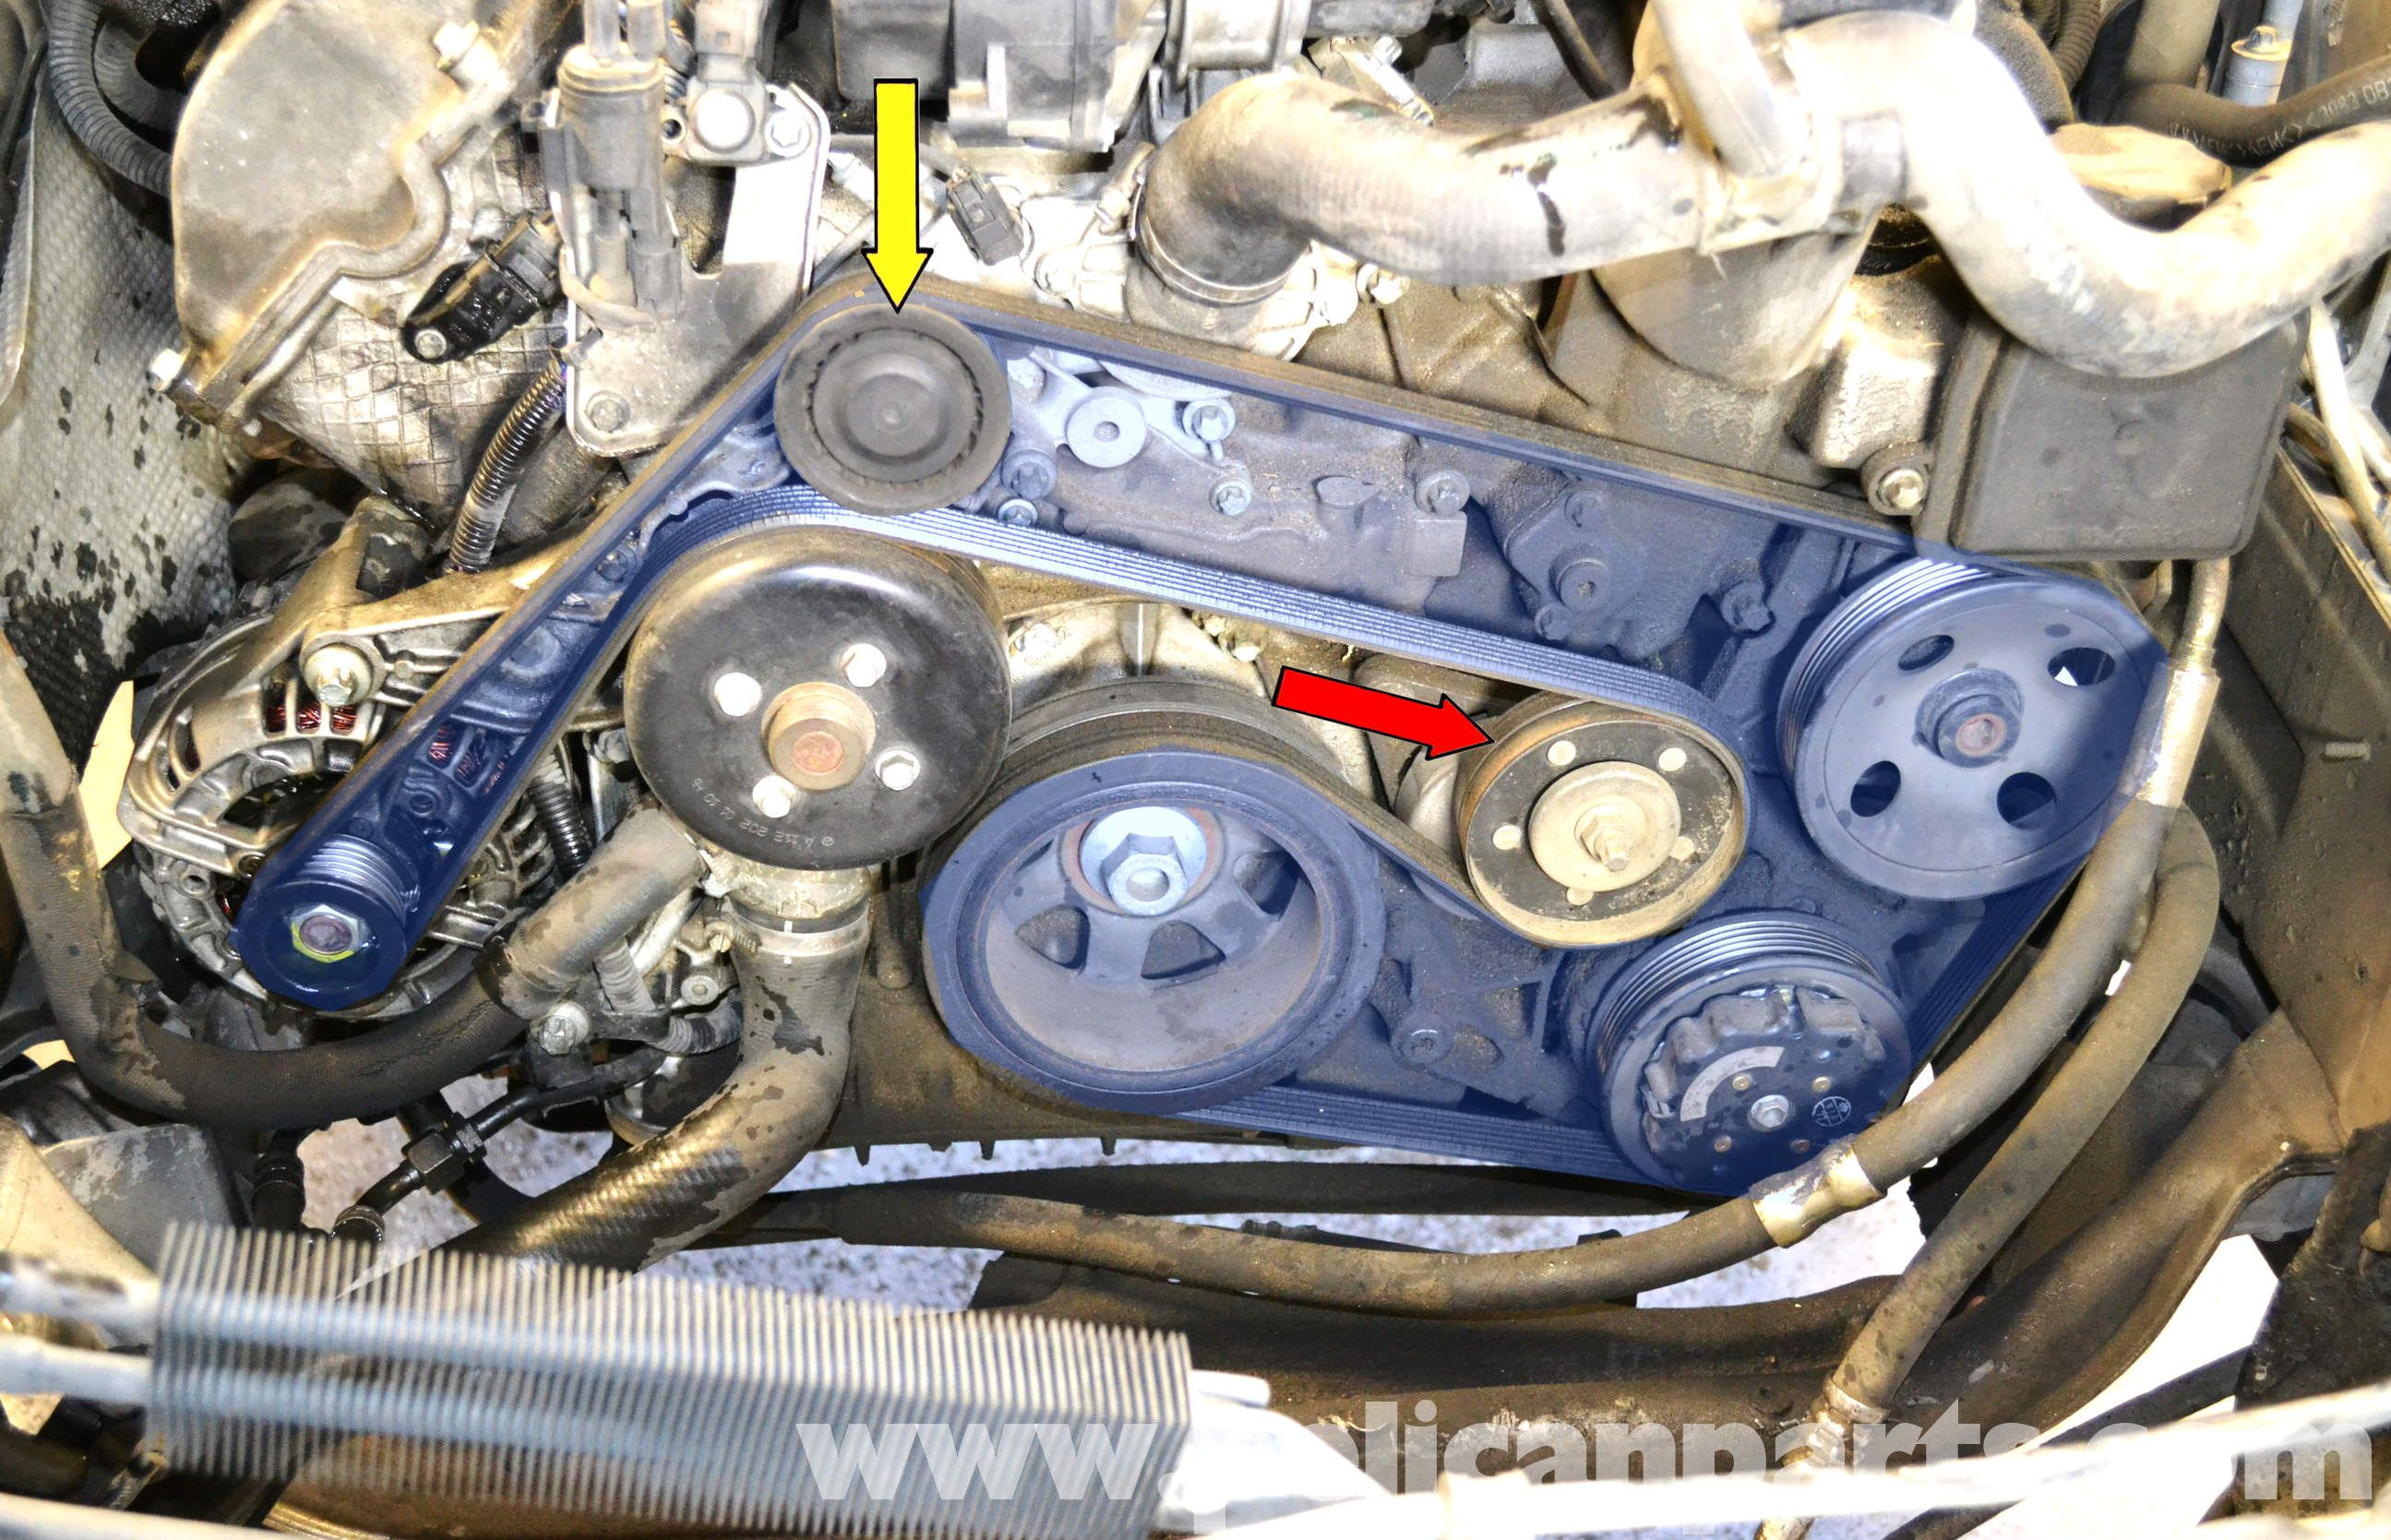 15724fbdf7b7a7e39a68cd44b4e5ec9c mercedes benz w203 water pump replacement (2001 2007) c230, c280 1999 Mercedes E320 at aneh.co